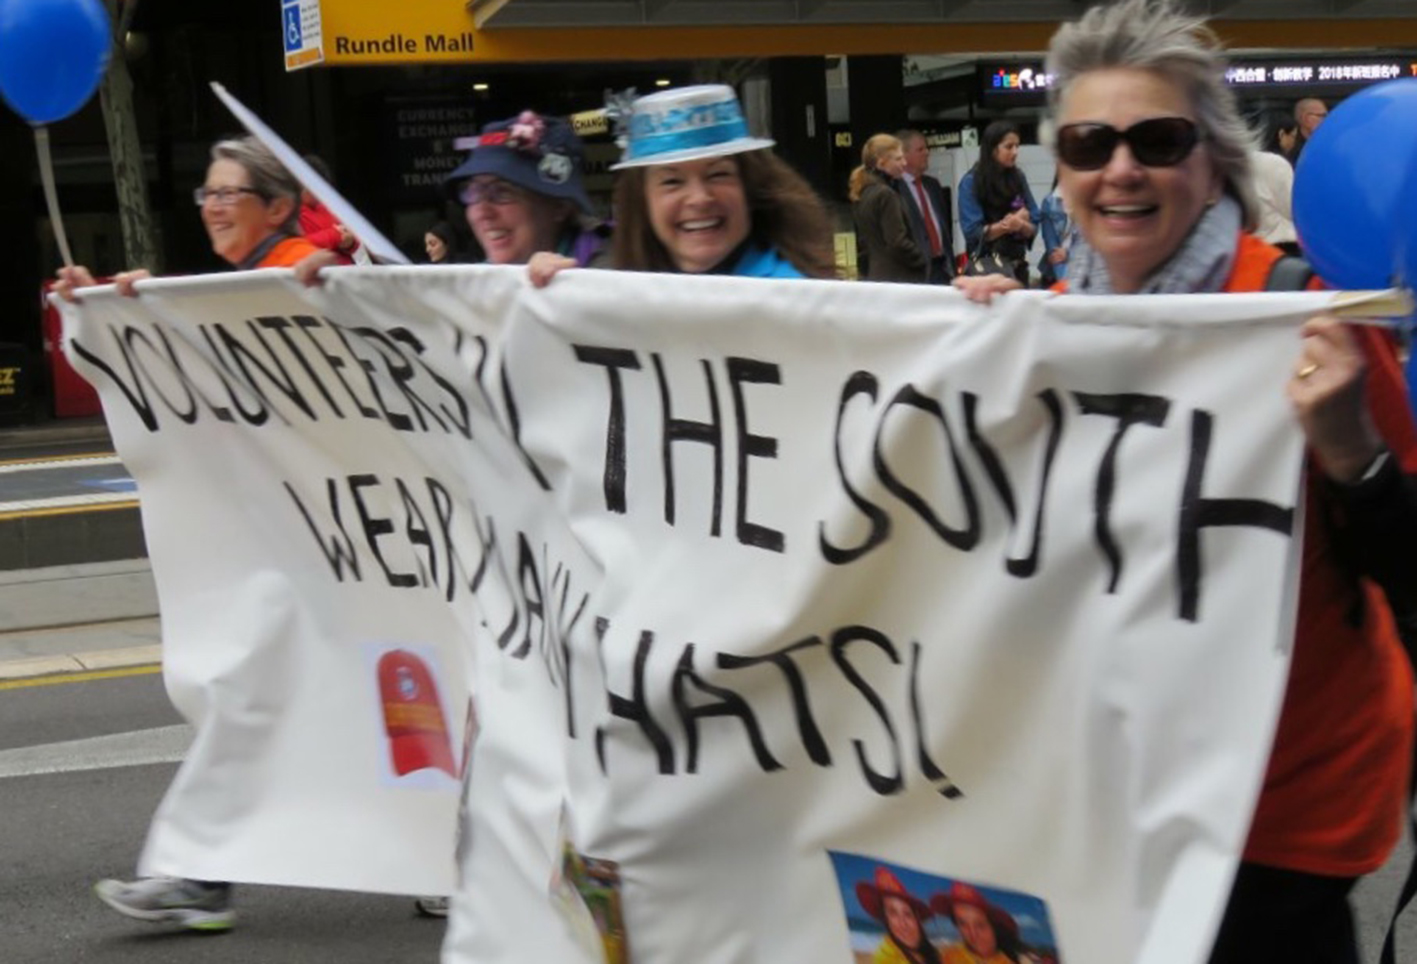 Southern Adelaide volunteers march in a parade